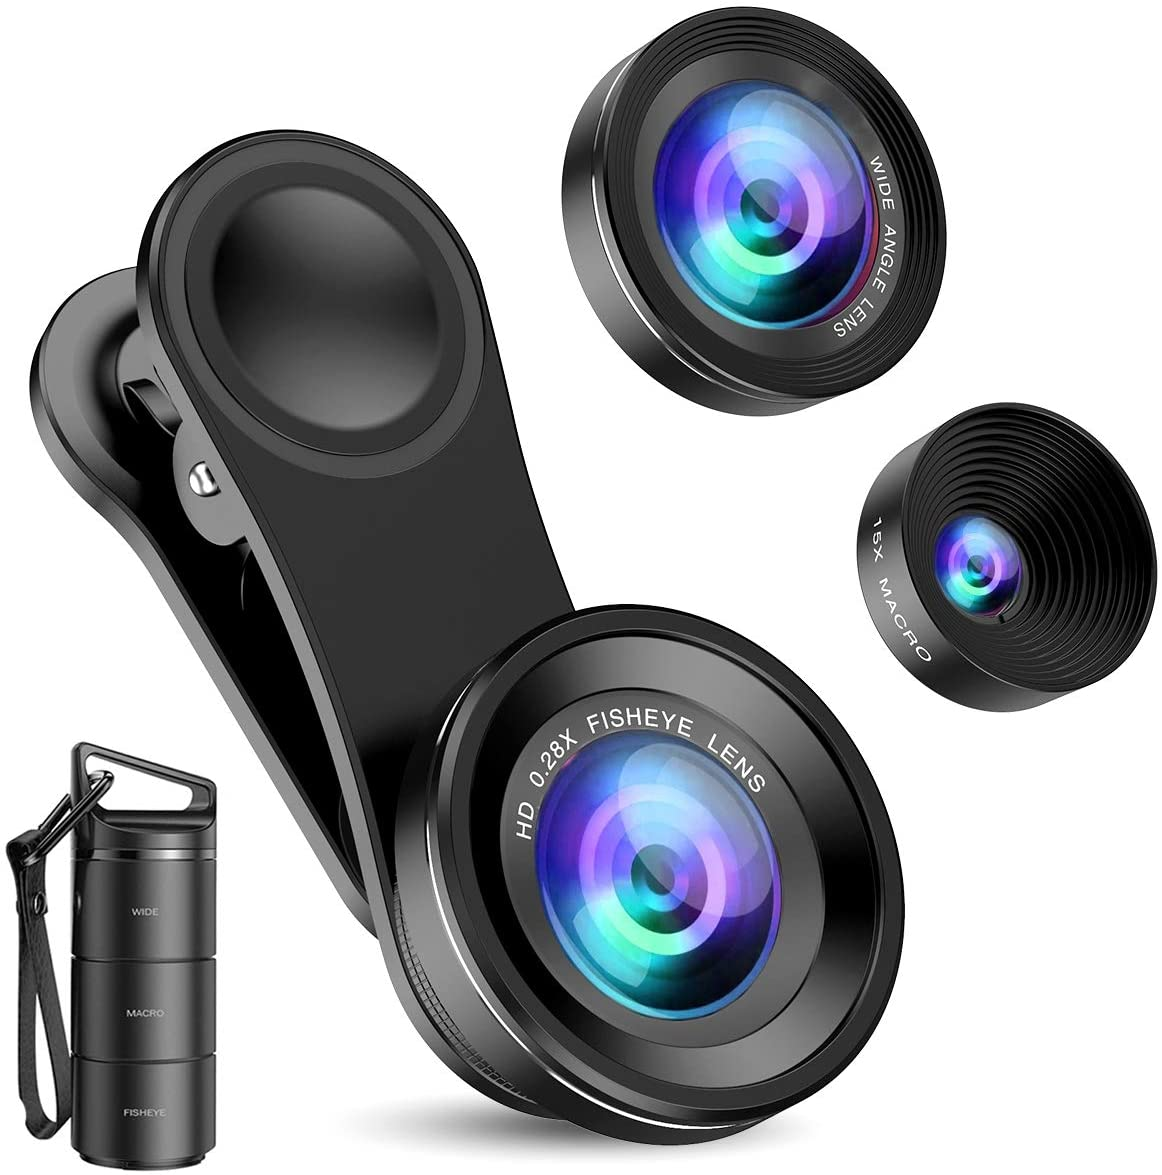 Criacr Phone Camera Lens, 3 in 1 Cell Phone Lens Kit for iPhone, Samsung, 180°Fisheye Lens, 0.6X Wide Angle Lens, 15X Macro Lens, for TIK Tok Video, Live Show, Video Chat, Vlog, etc